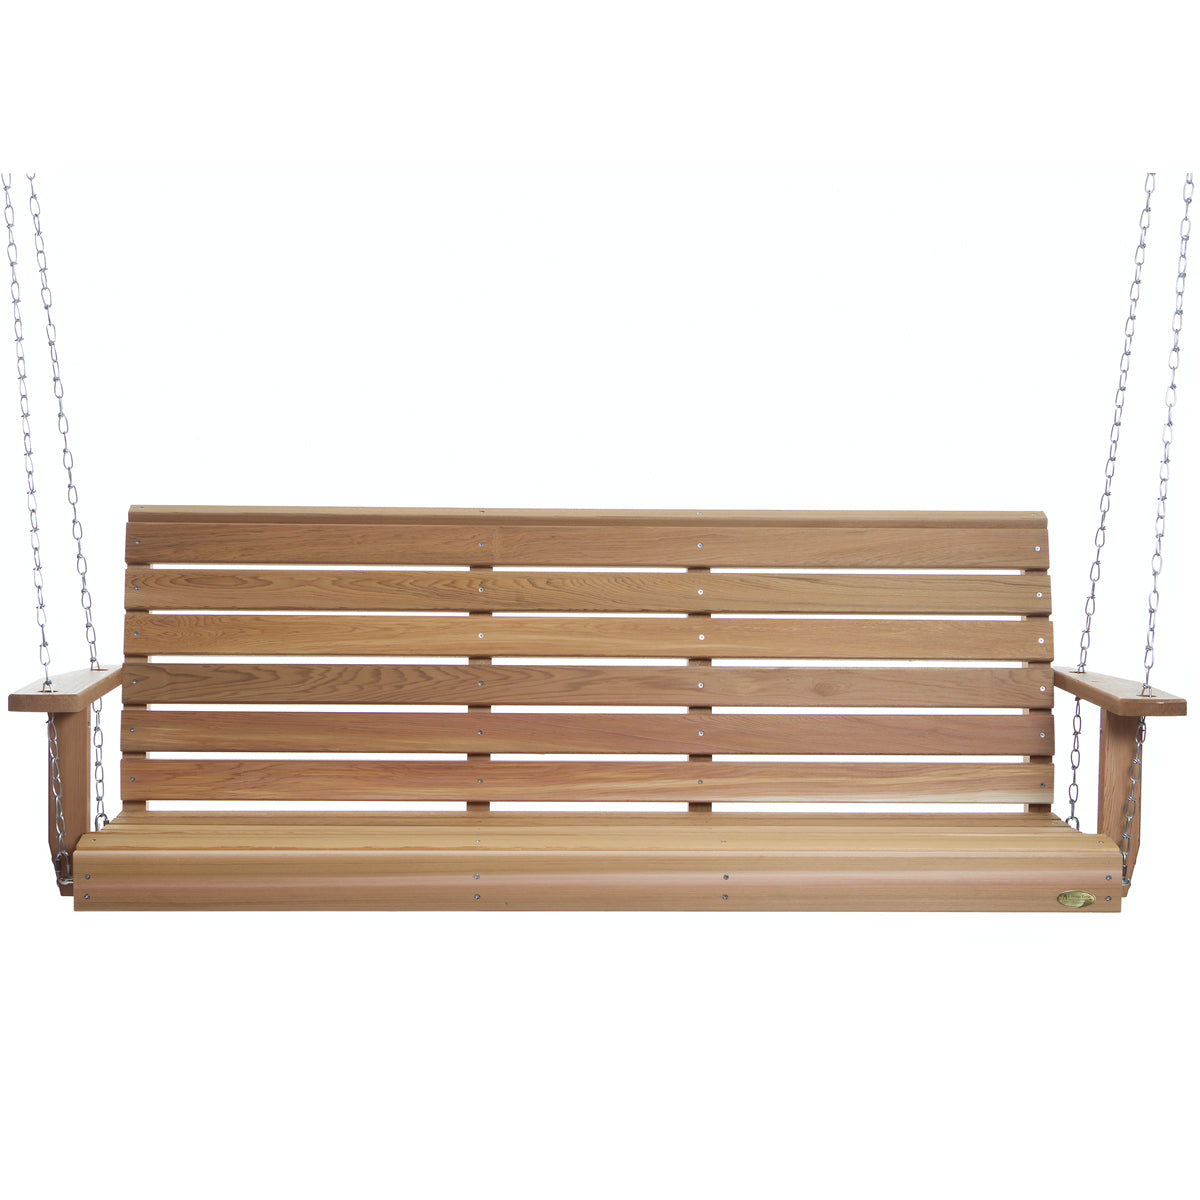 Porch Swing 6' By All Things Cedar